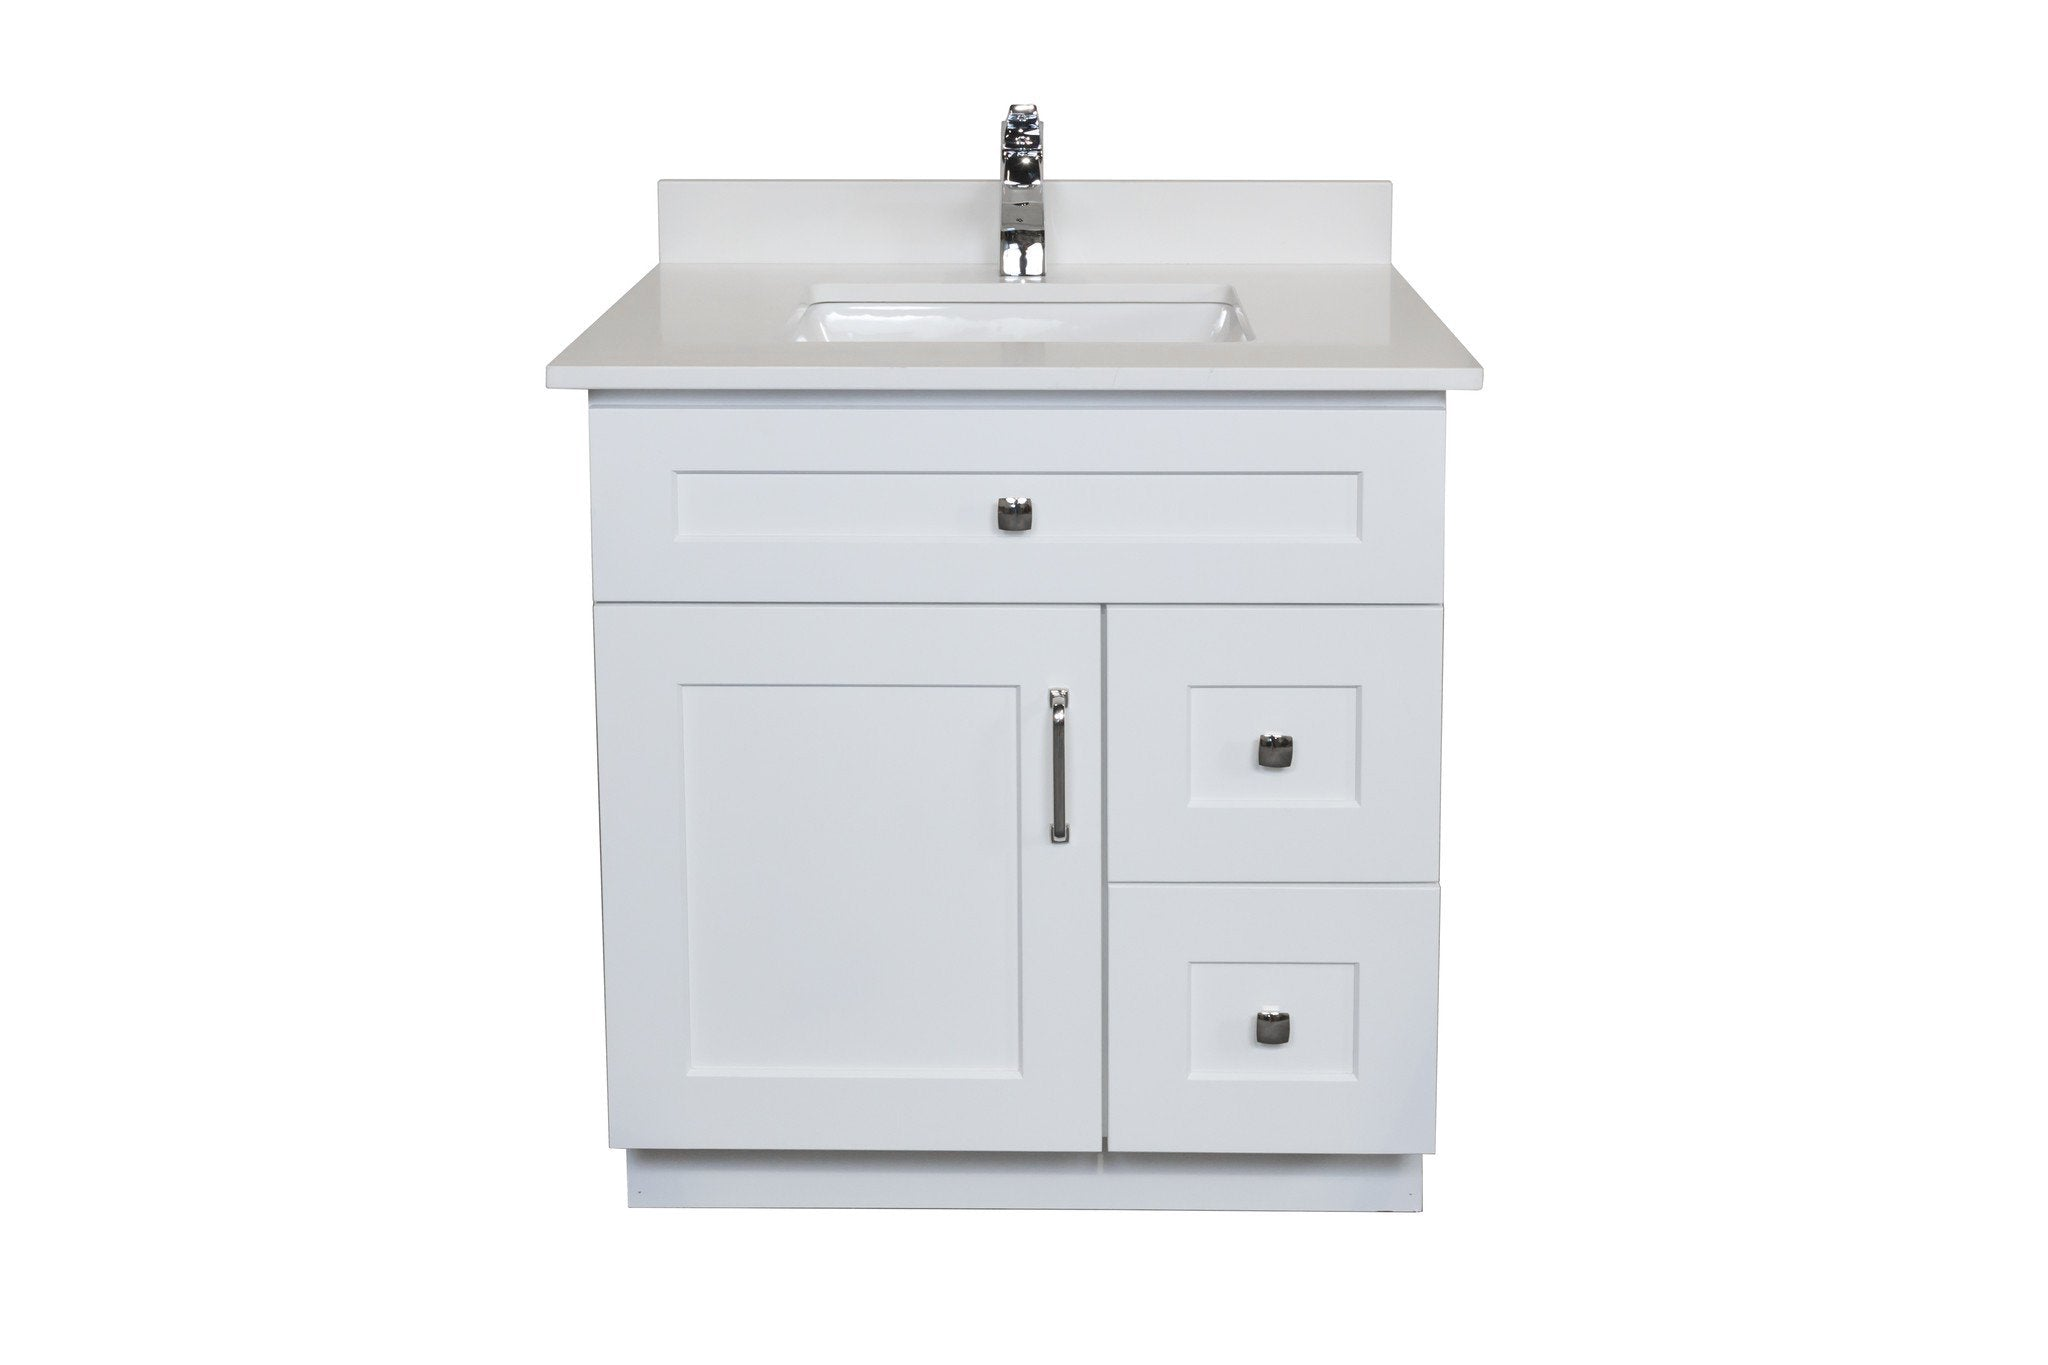 30 ̎ Maple Wood Bathroom Vanity in White - Combo – Broadway Vanities